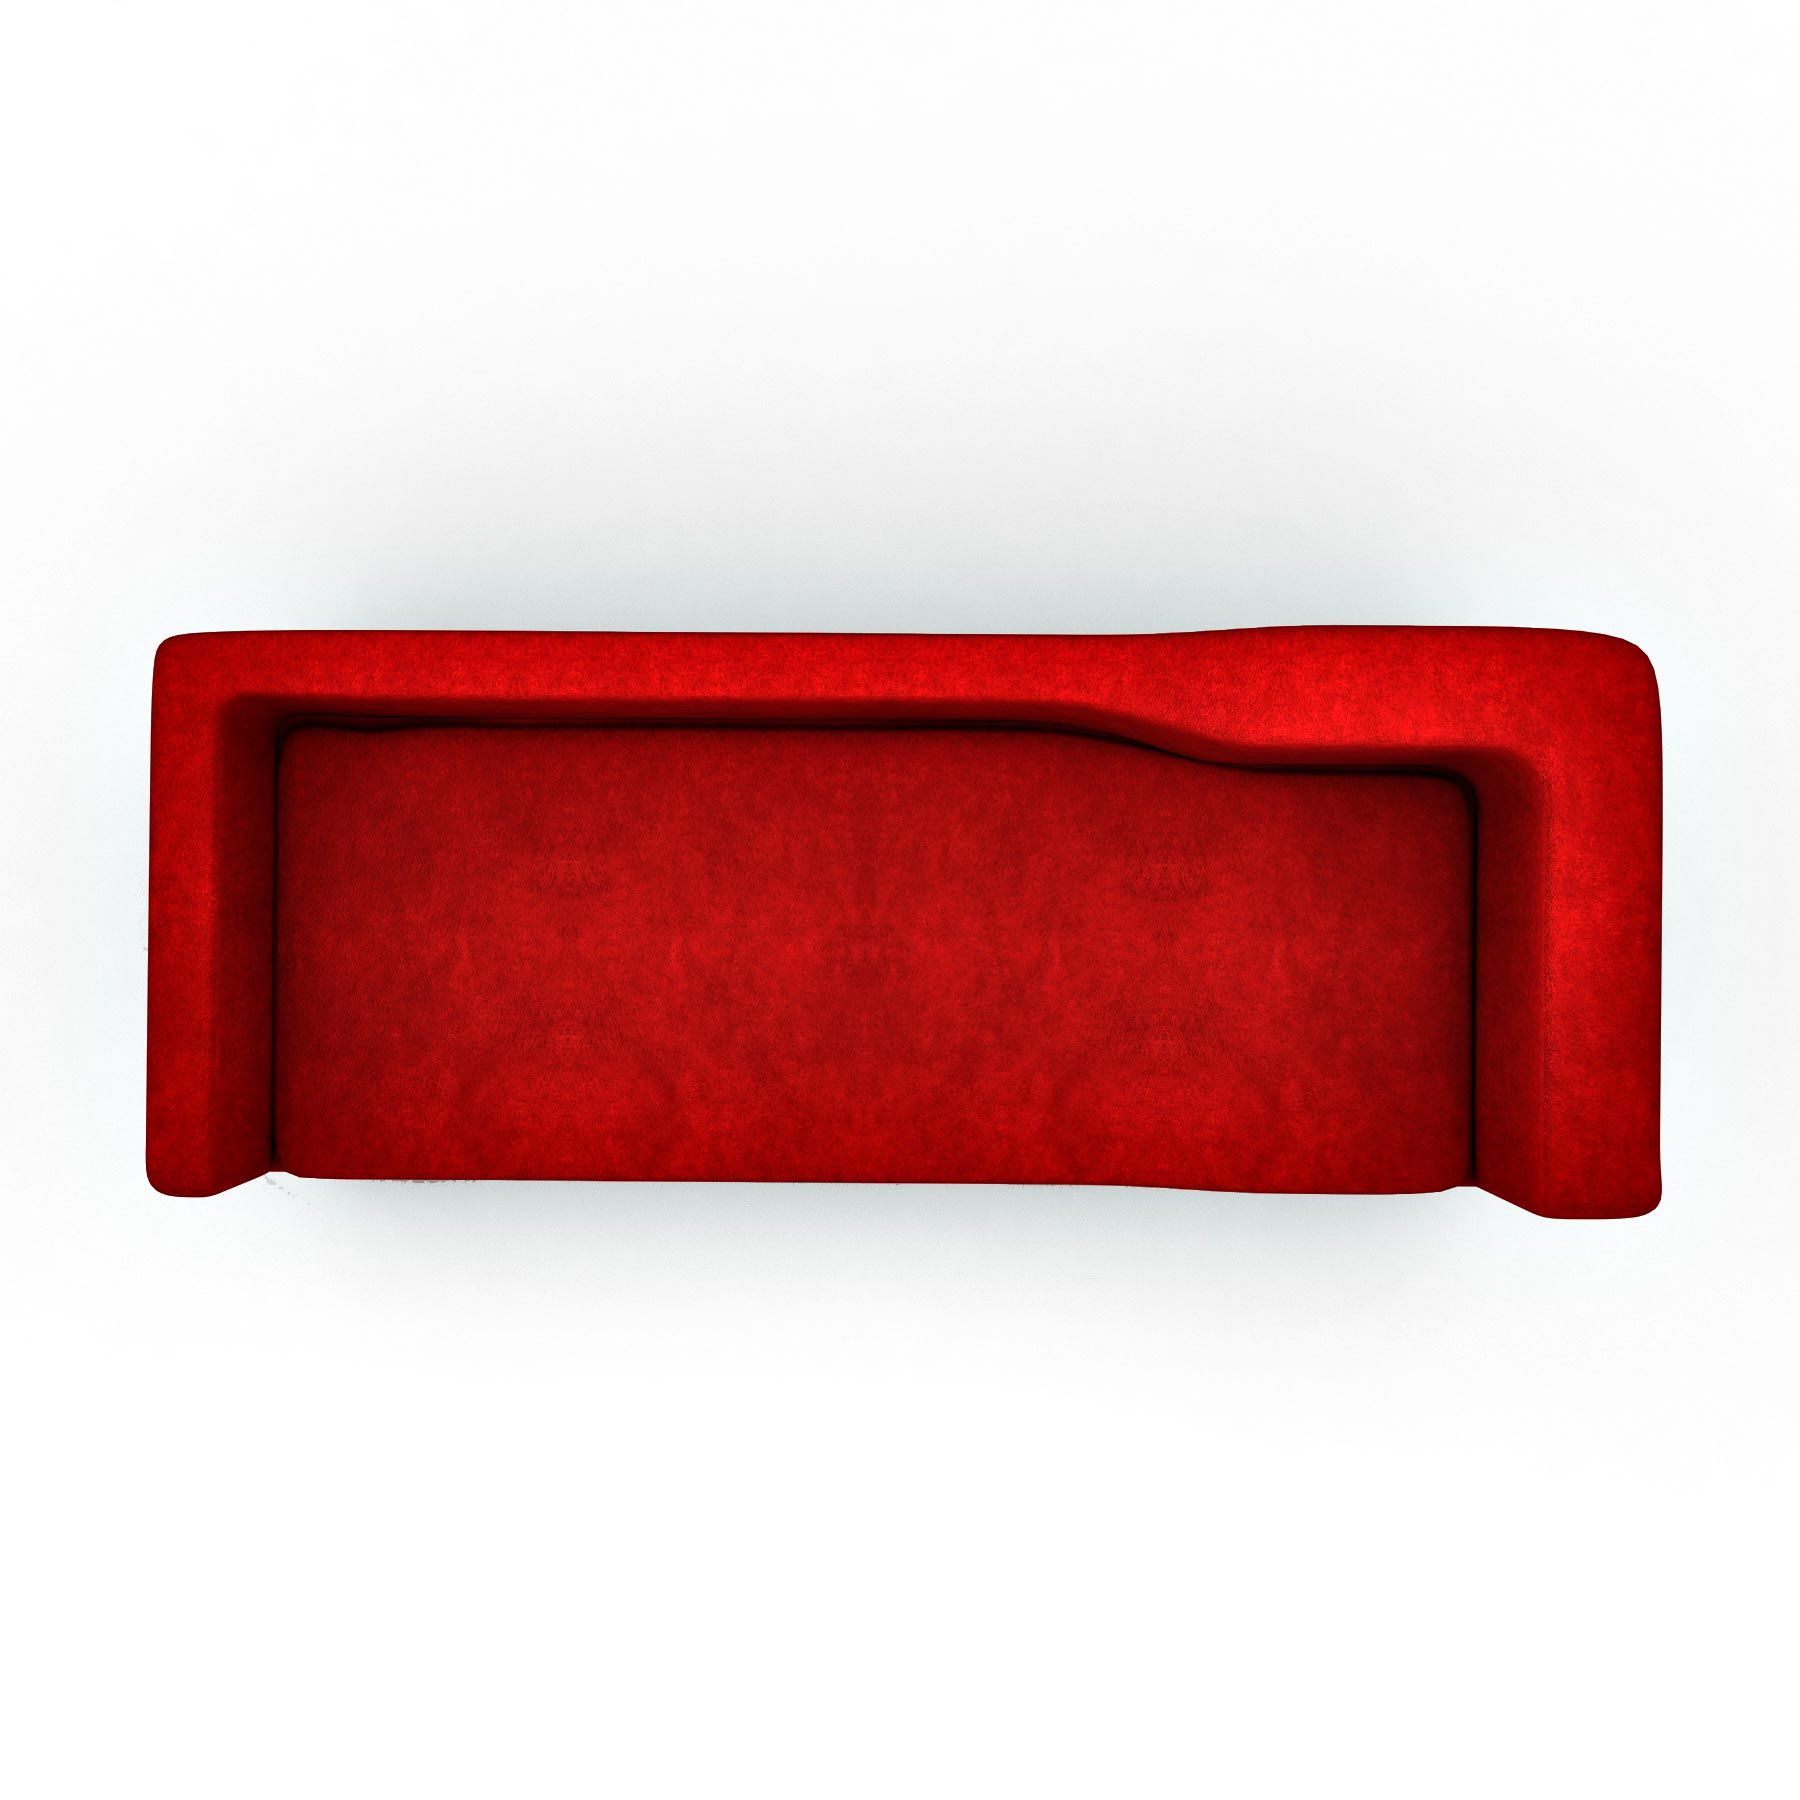 Double bed top view png - Apollo Modern Sofa In Elegant Red Color Top